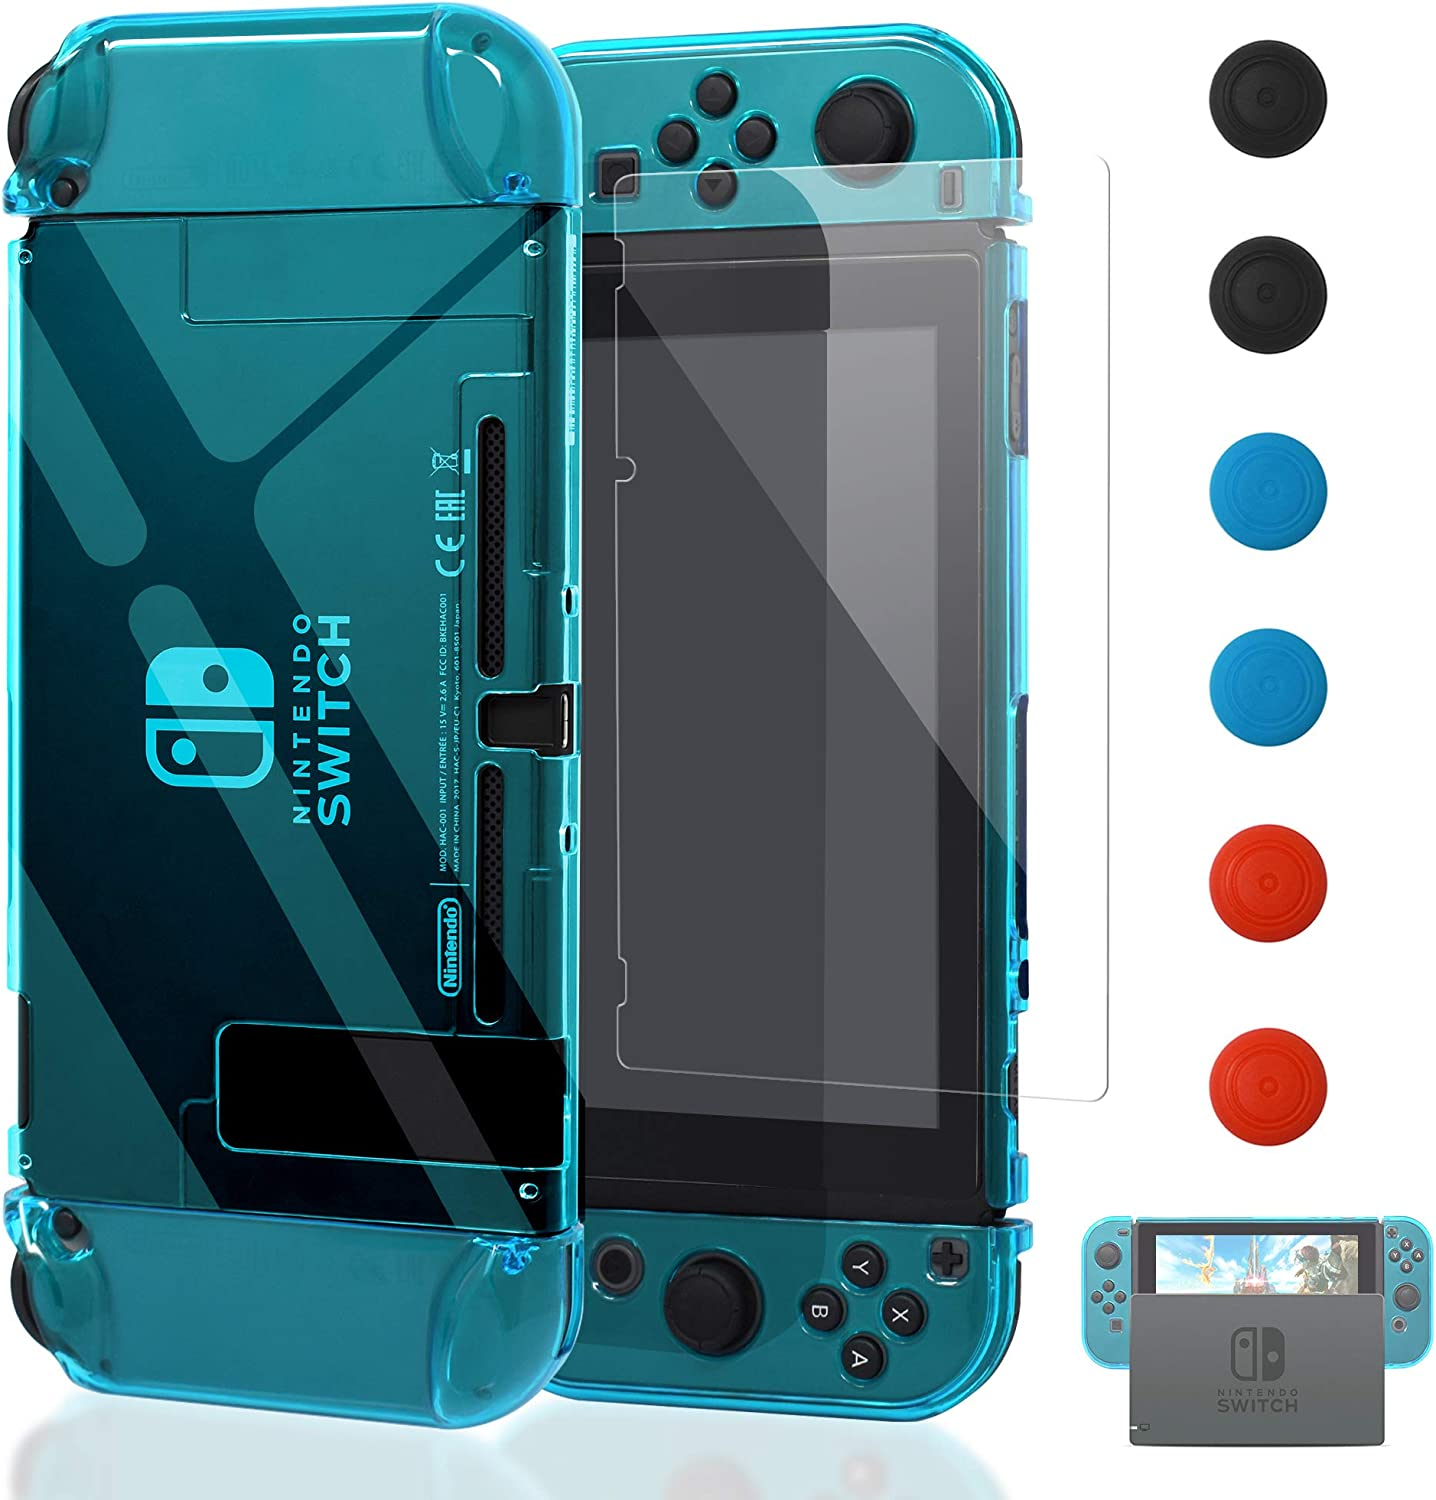 Dockable Case for Nintendo Switch [Updated],FYOUNG Protective Accessories Cover Case for Nintendo Switch and Nintendo Switch Joy-Con Controller with a Tempered Glass Screen Protector - Clear Blue: Electronics